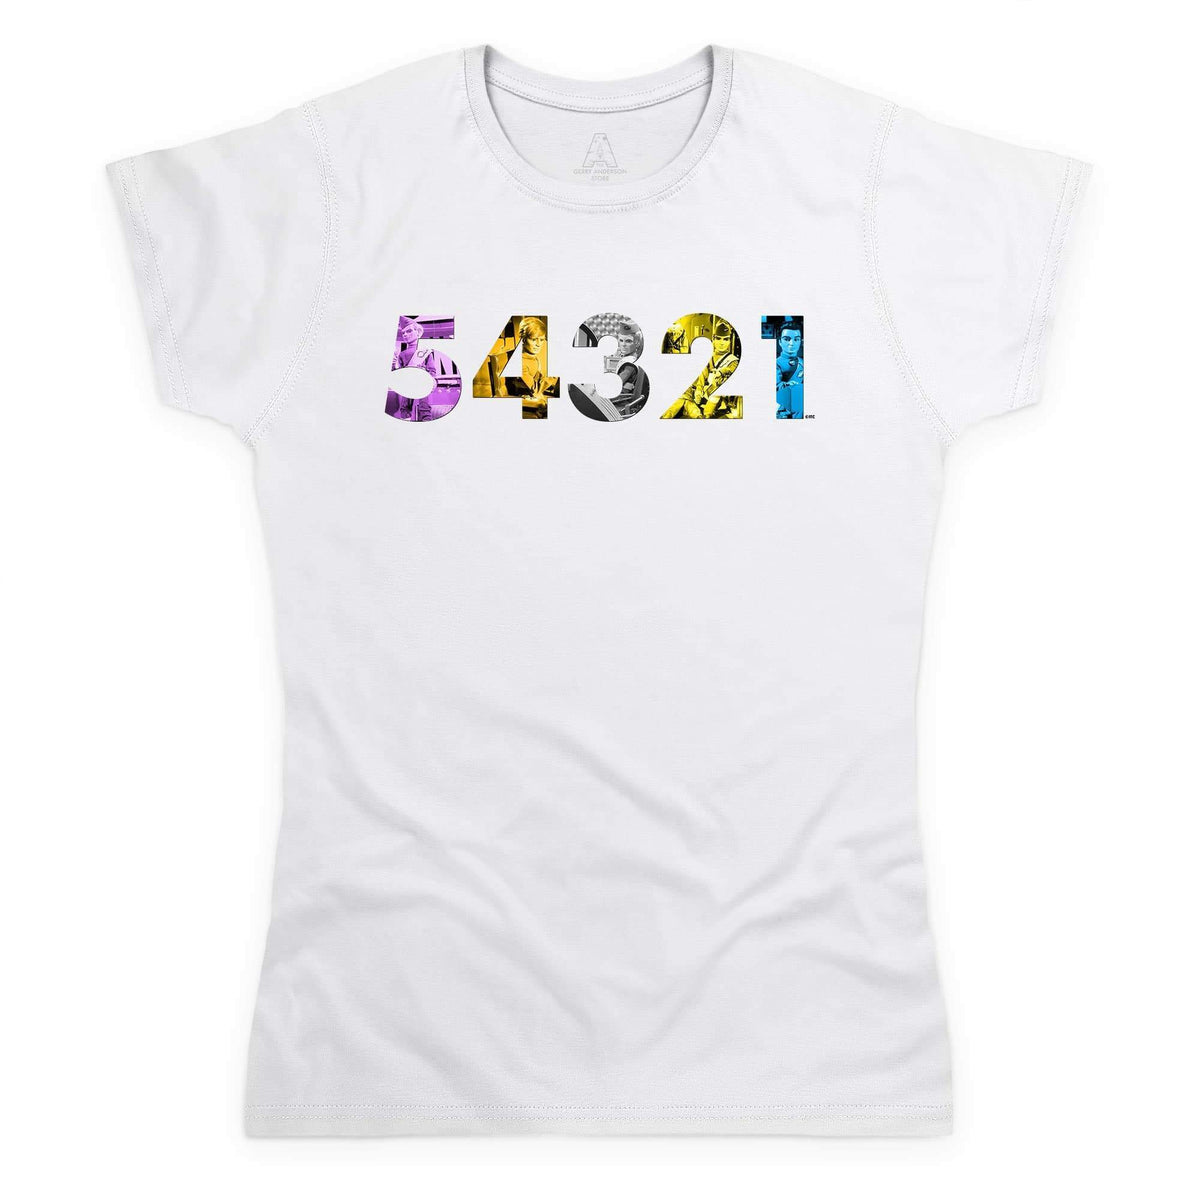 Thunderbirds 54321 Women's T-Shirt [Official & Exclusive] - The Gerry Anderson Store